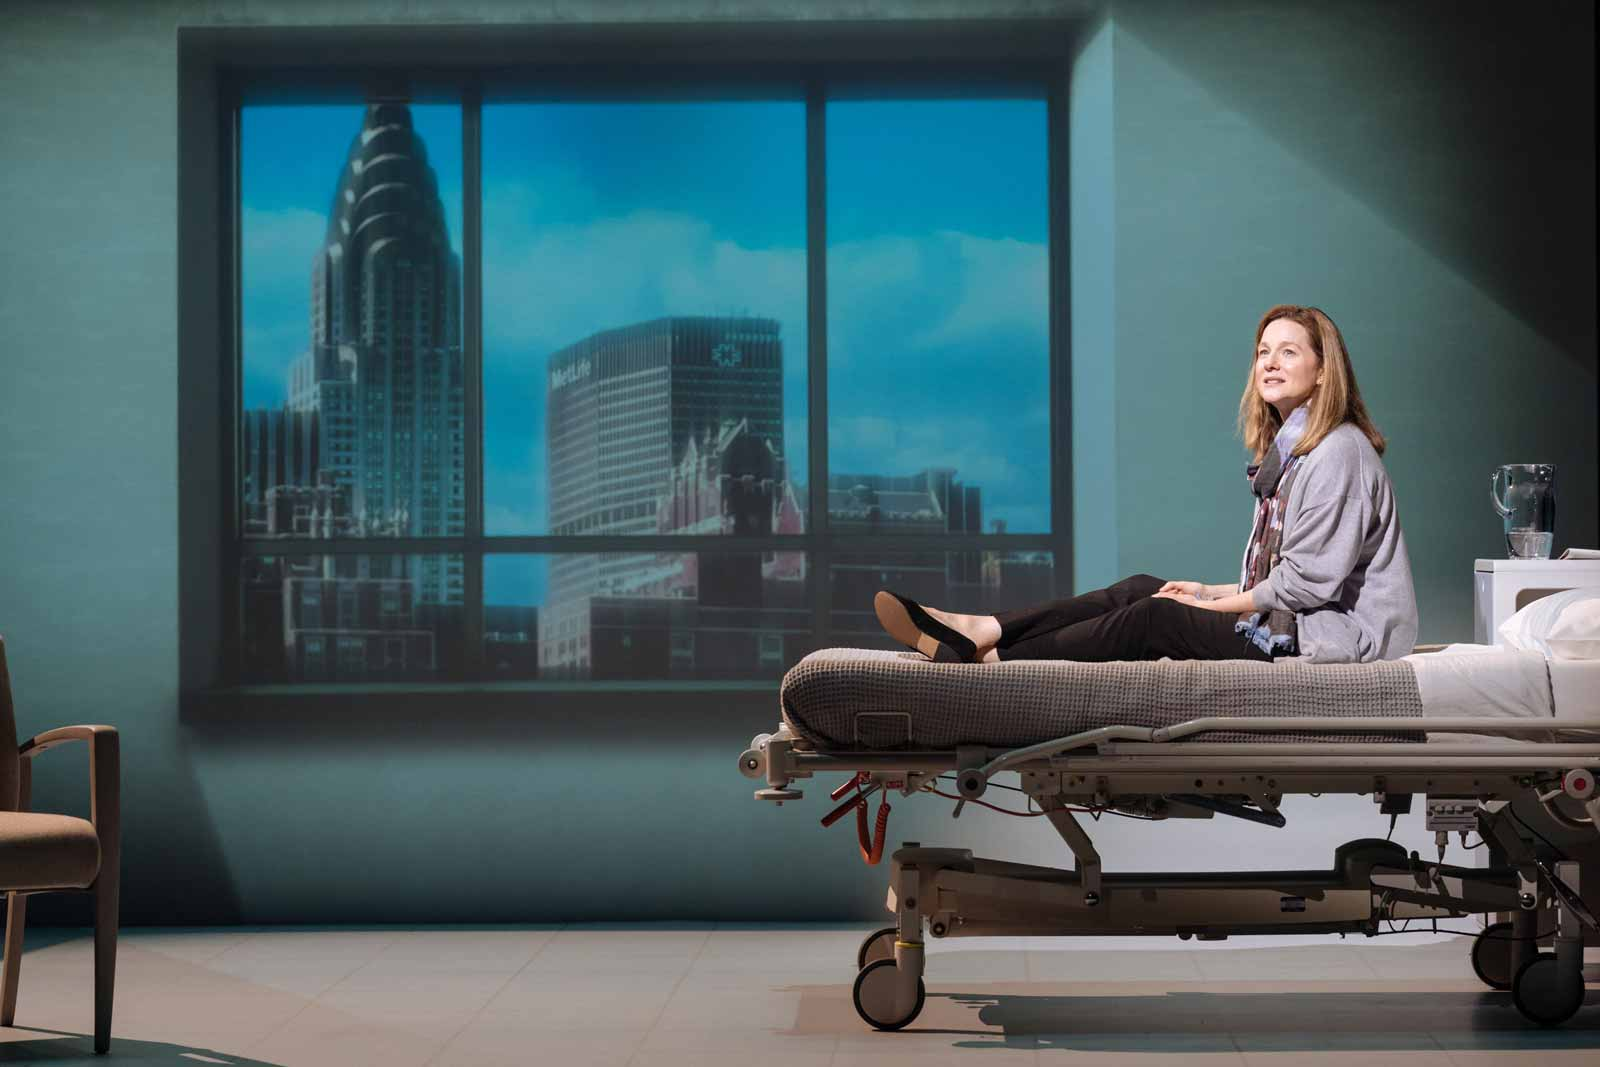 Laura Linney as Lucy Barton in My Name is Lucy Barton, directed by Richard Eyre, Bridge Theatre, London, 2018